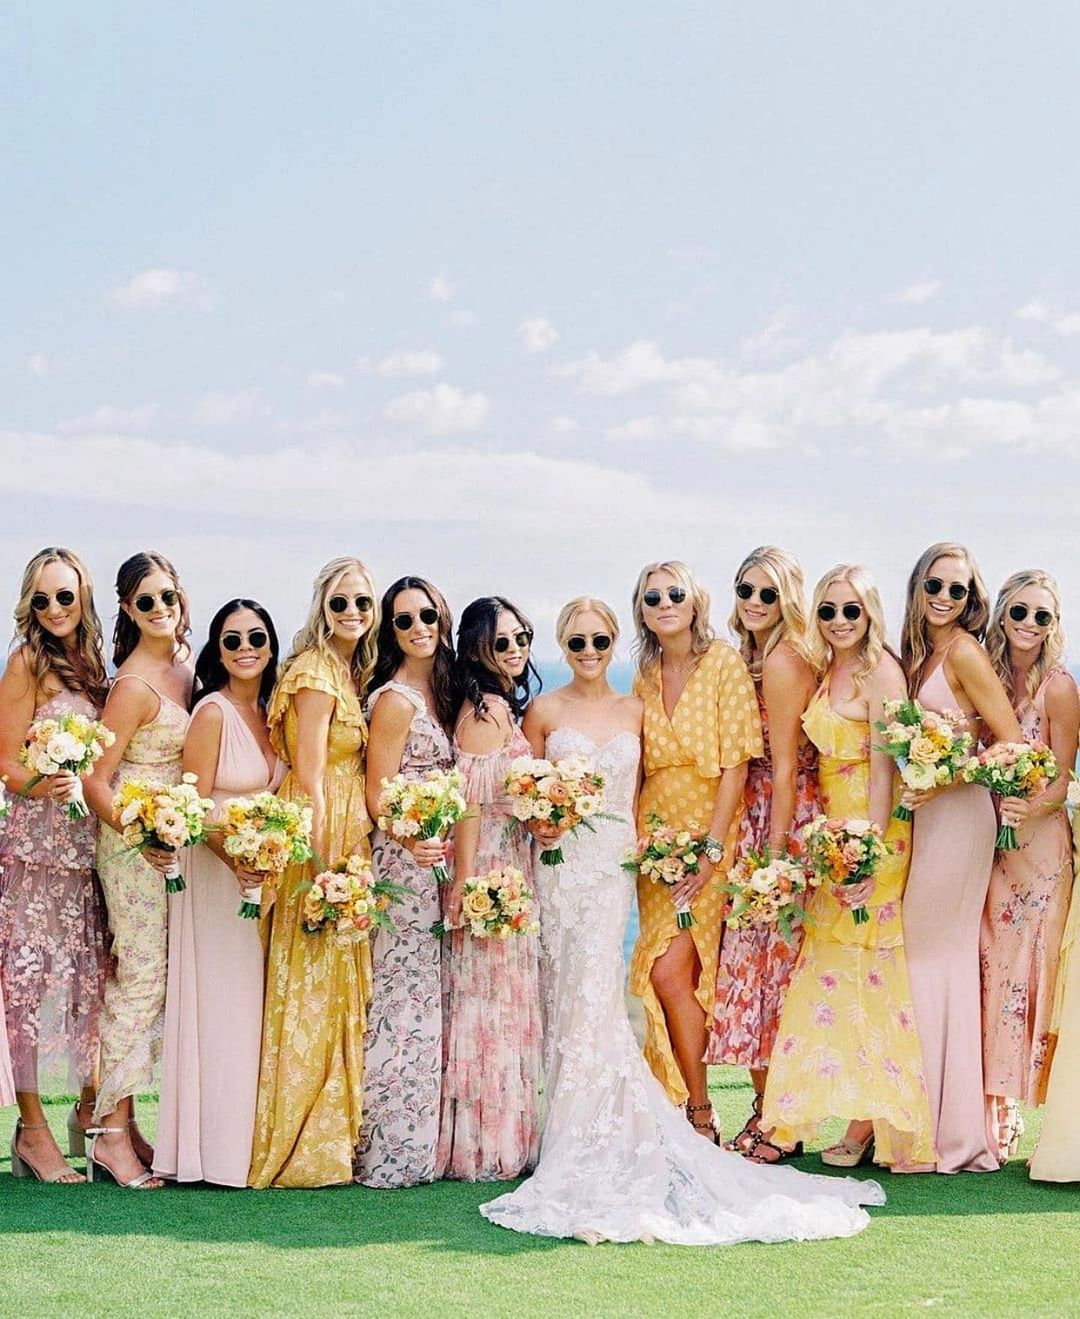 mismatched bridesmaids in sunglasses